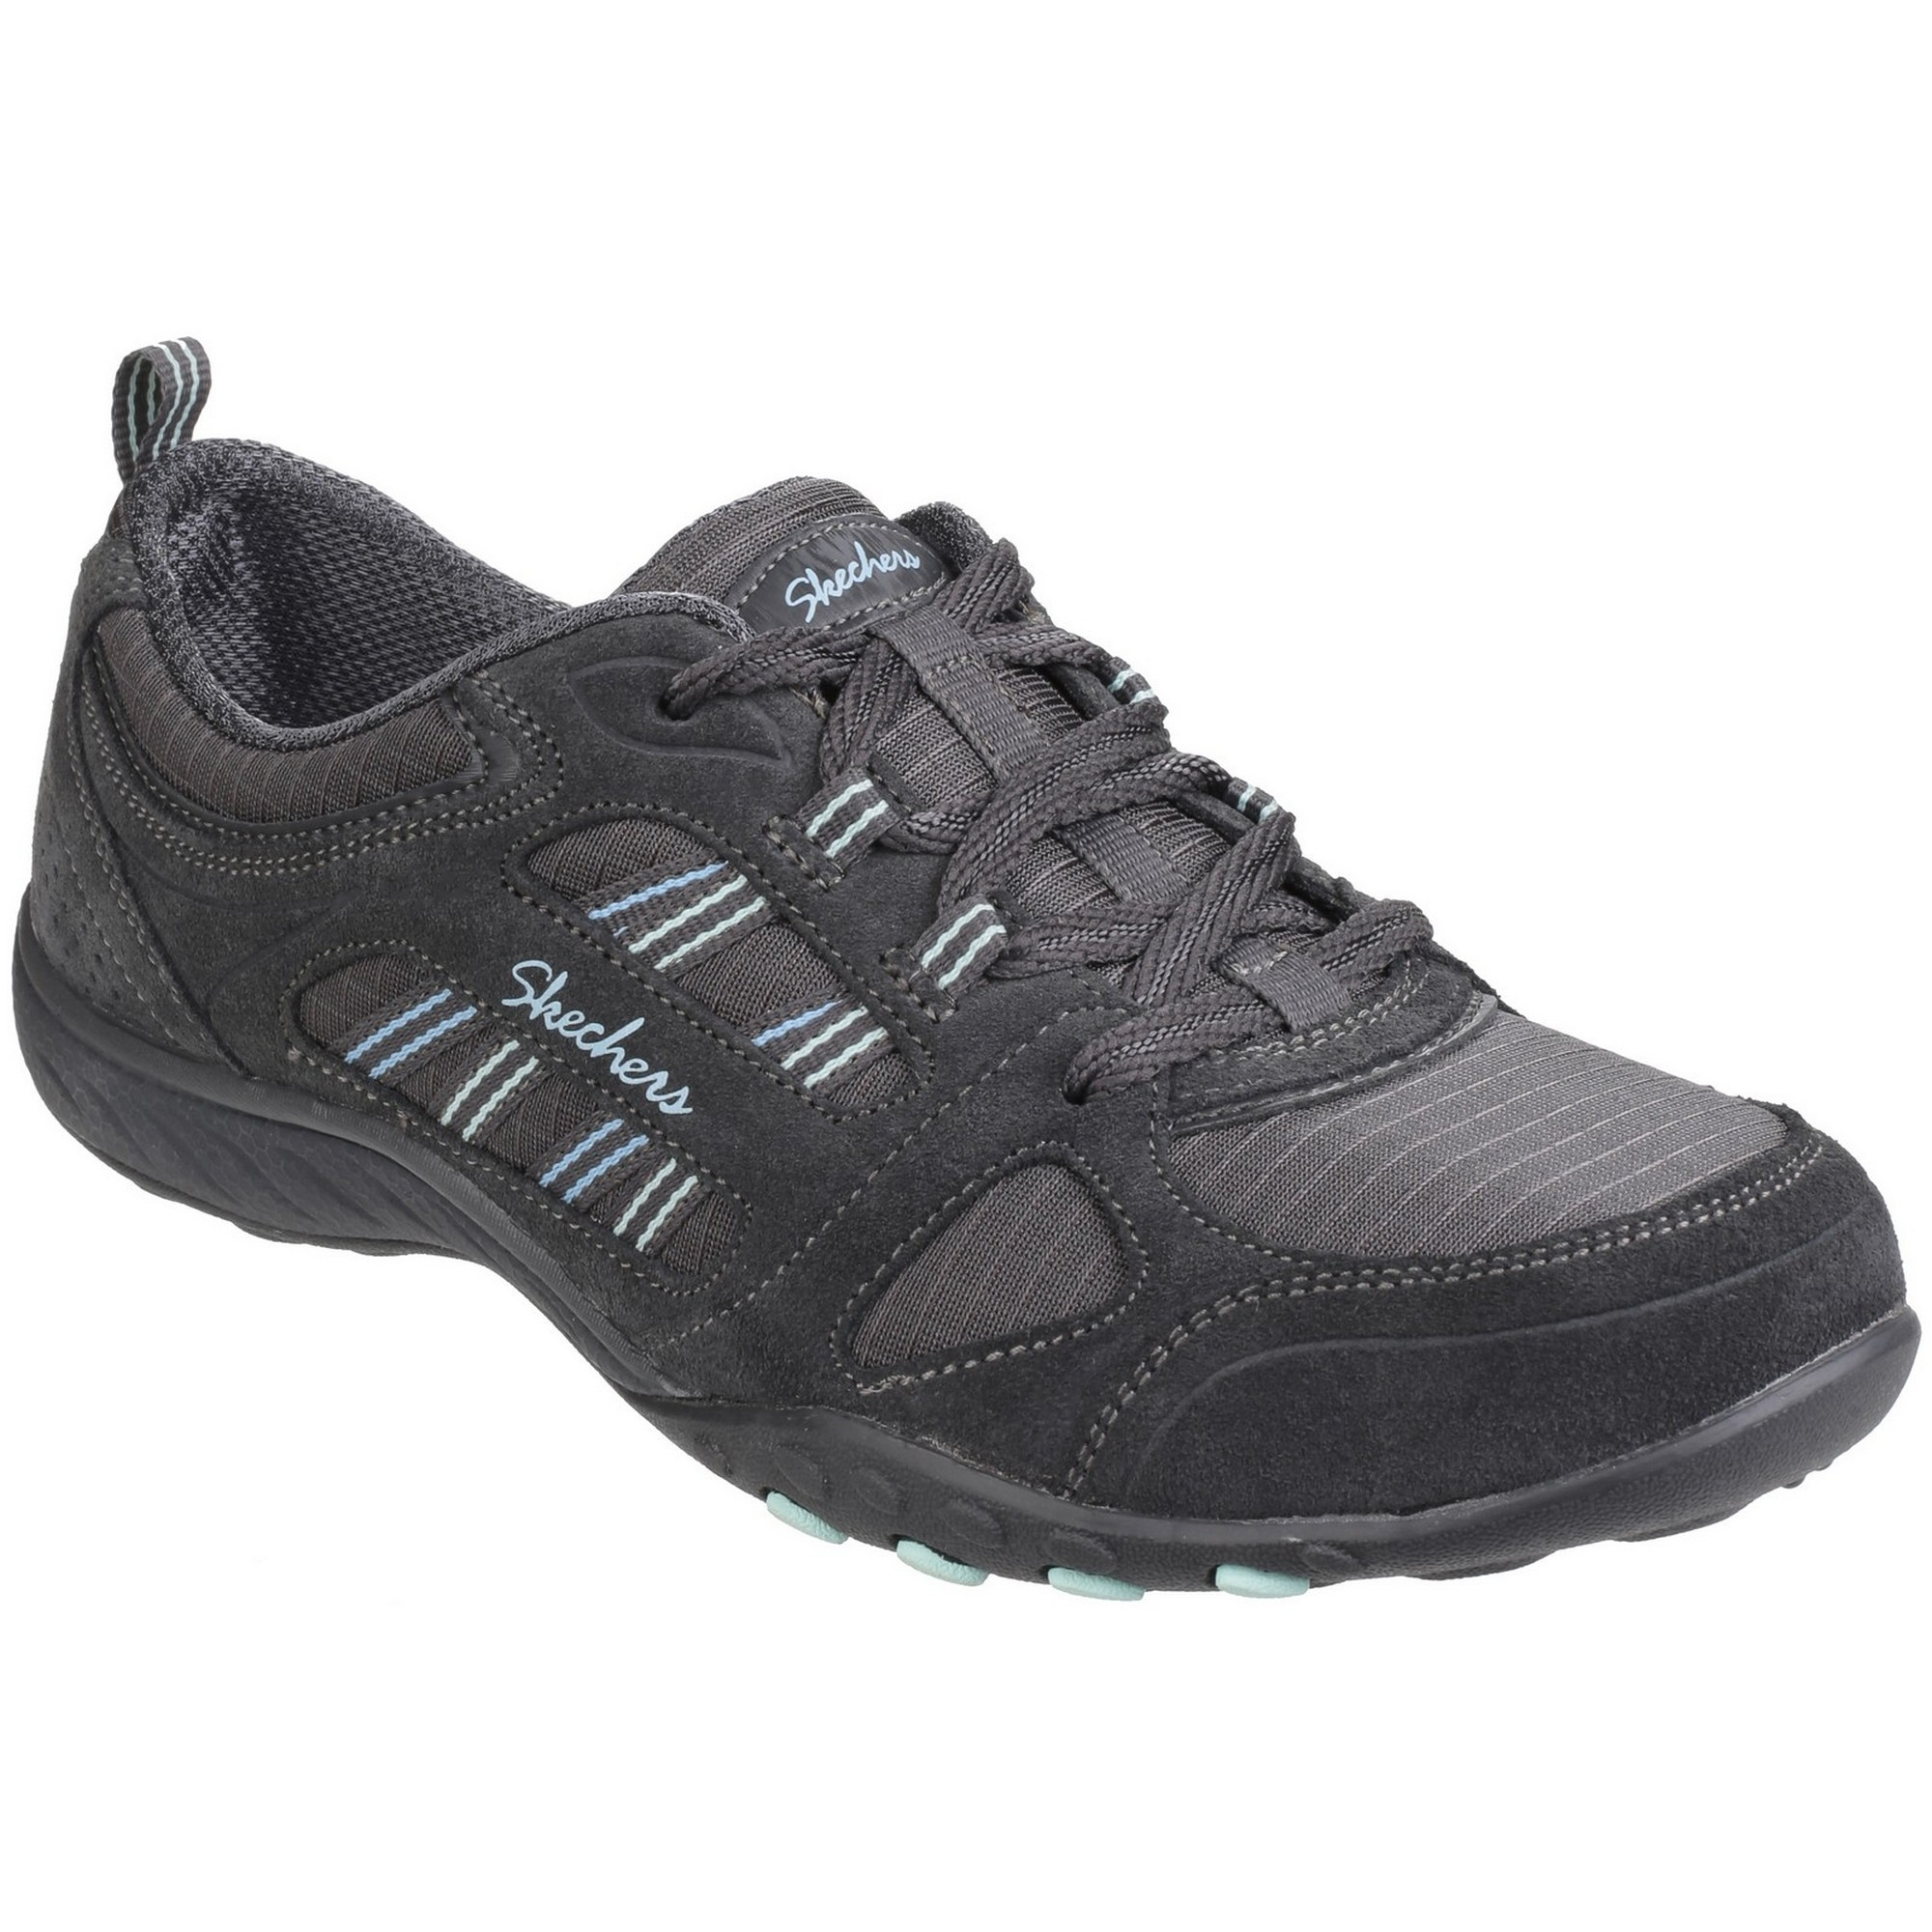 quality design a9511 4565e ... Skechers - Zapatillas deportivas modelo Breathe Easy Good Luck para  (FS4009) ...